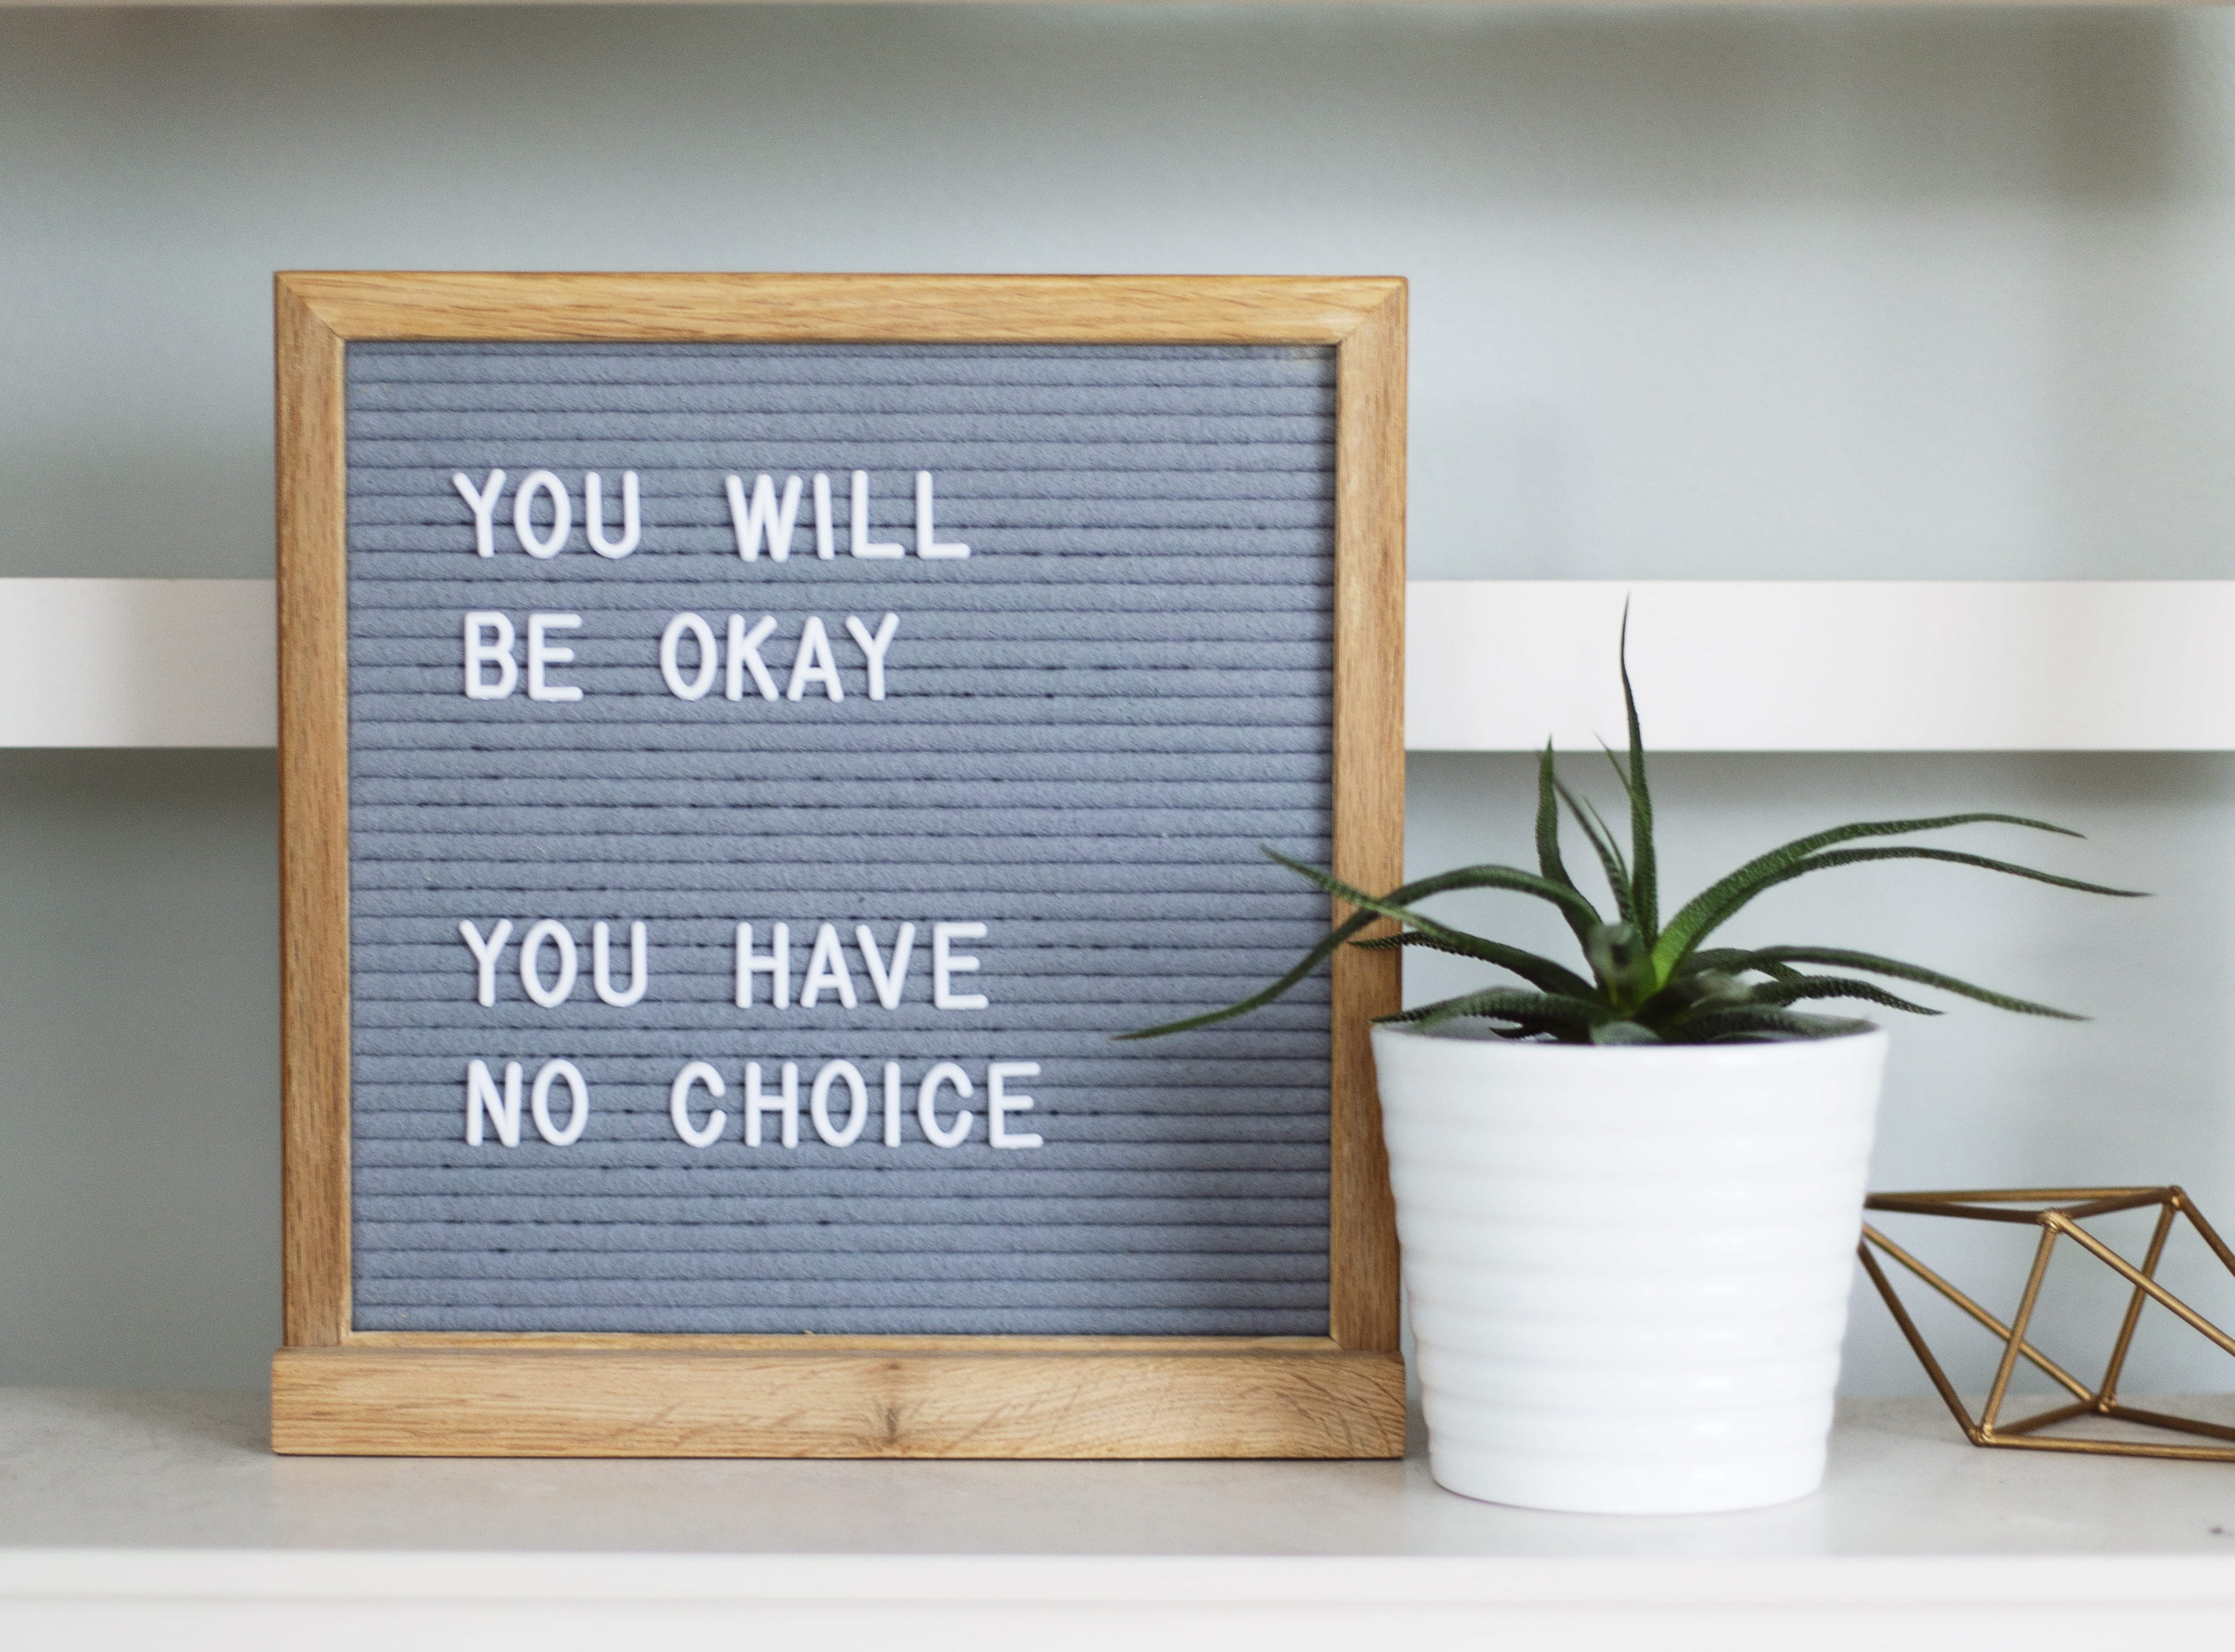 A photograph of a white desk against an off white wall with a white panel in the middle going left to right. On the desk is a wooden frame with a grey background, in the frame it reads 'You will be okay, you have no choice'. To the right of this is a small white plant pot with a green plant that has long thin leaves.